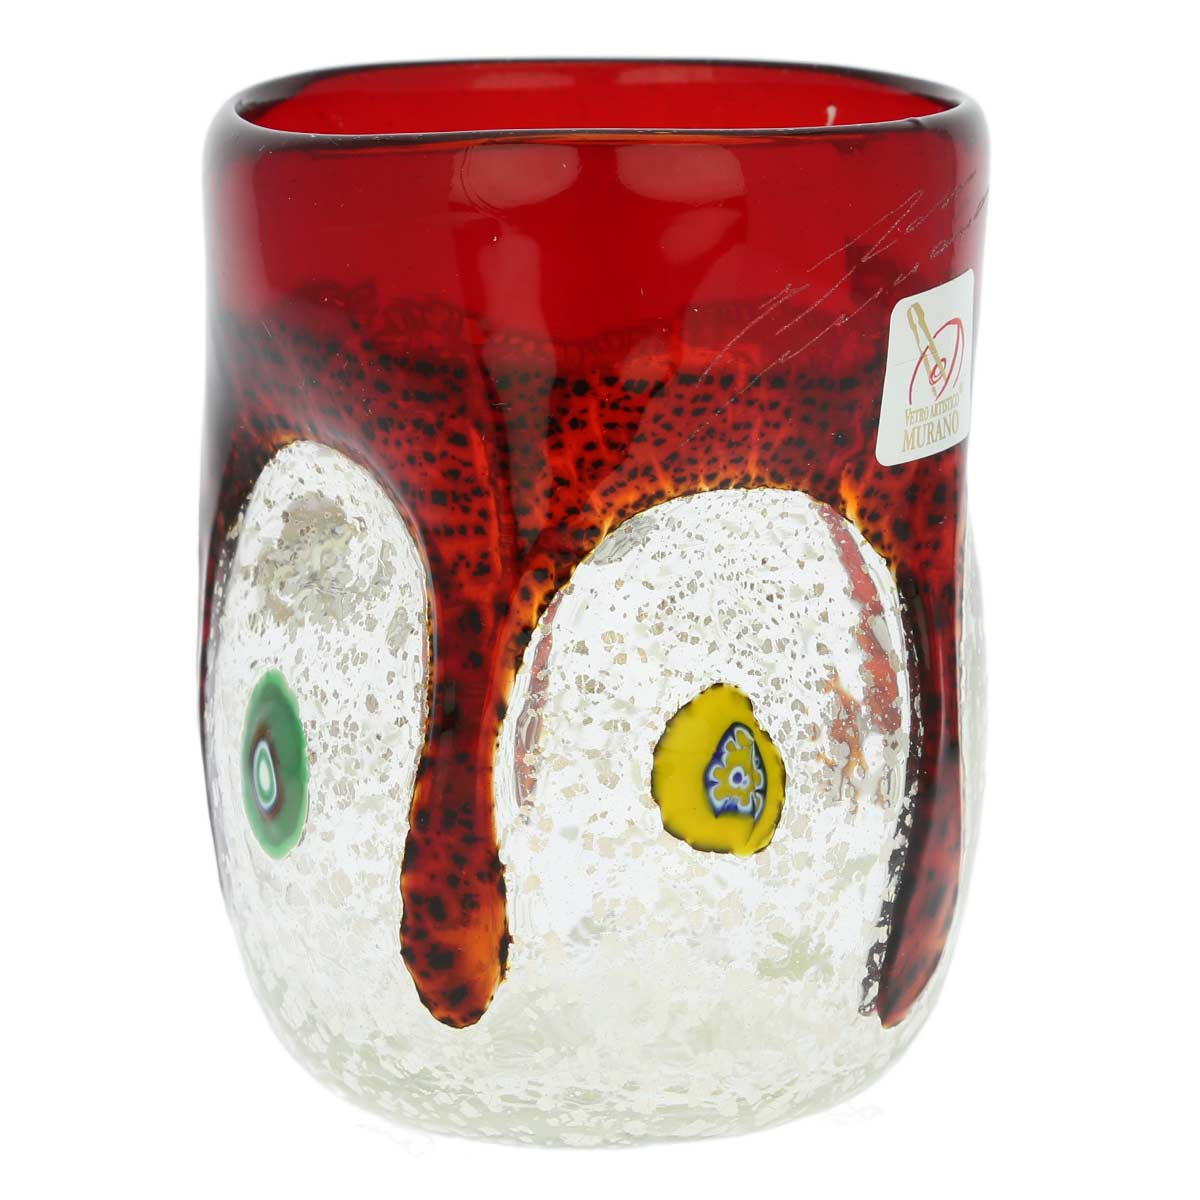 Murano Drinking Glass - Silver Liquid Burgundy Mosaic